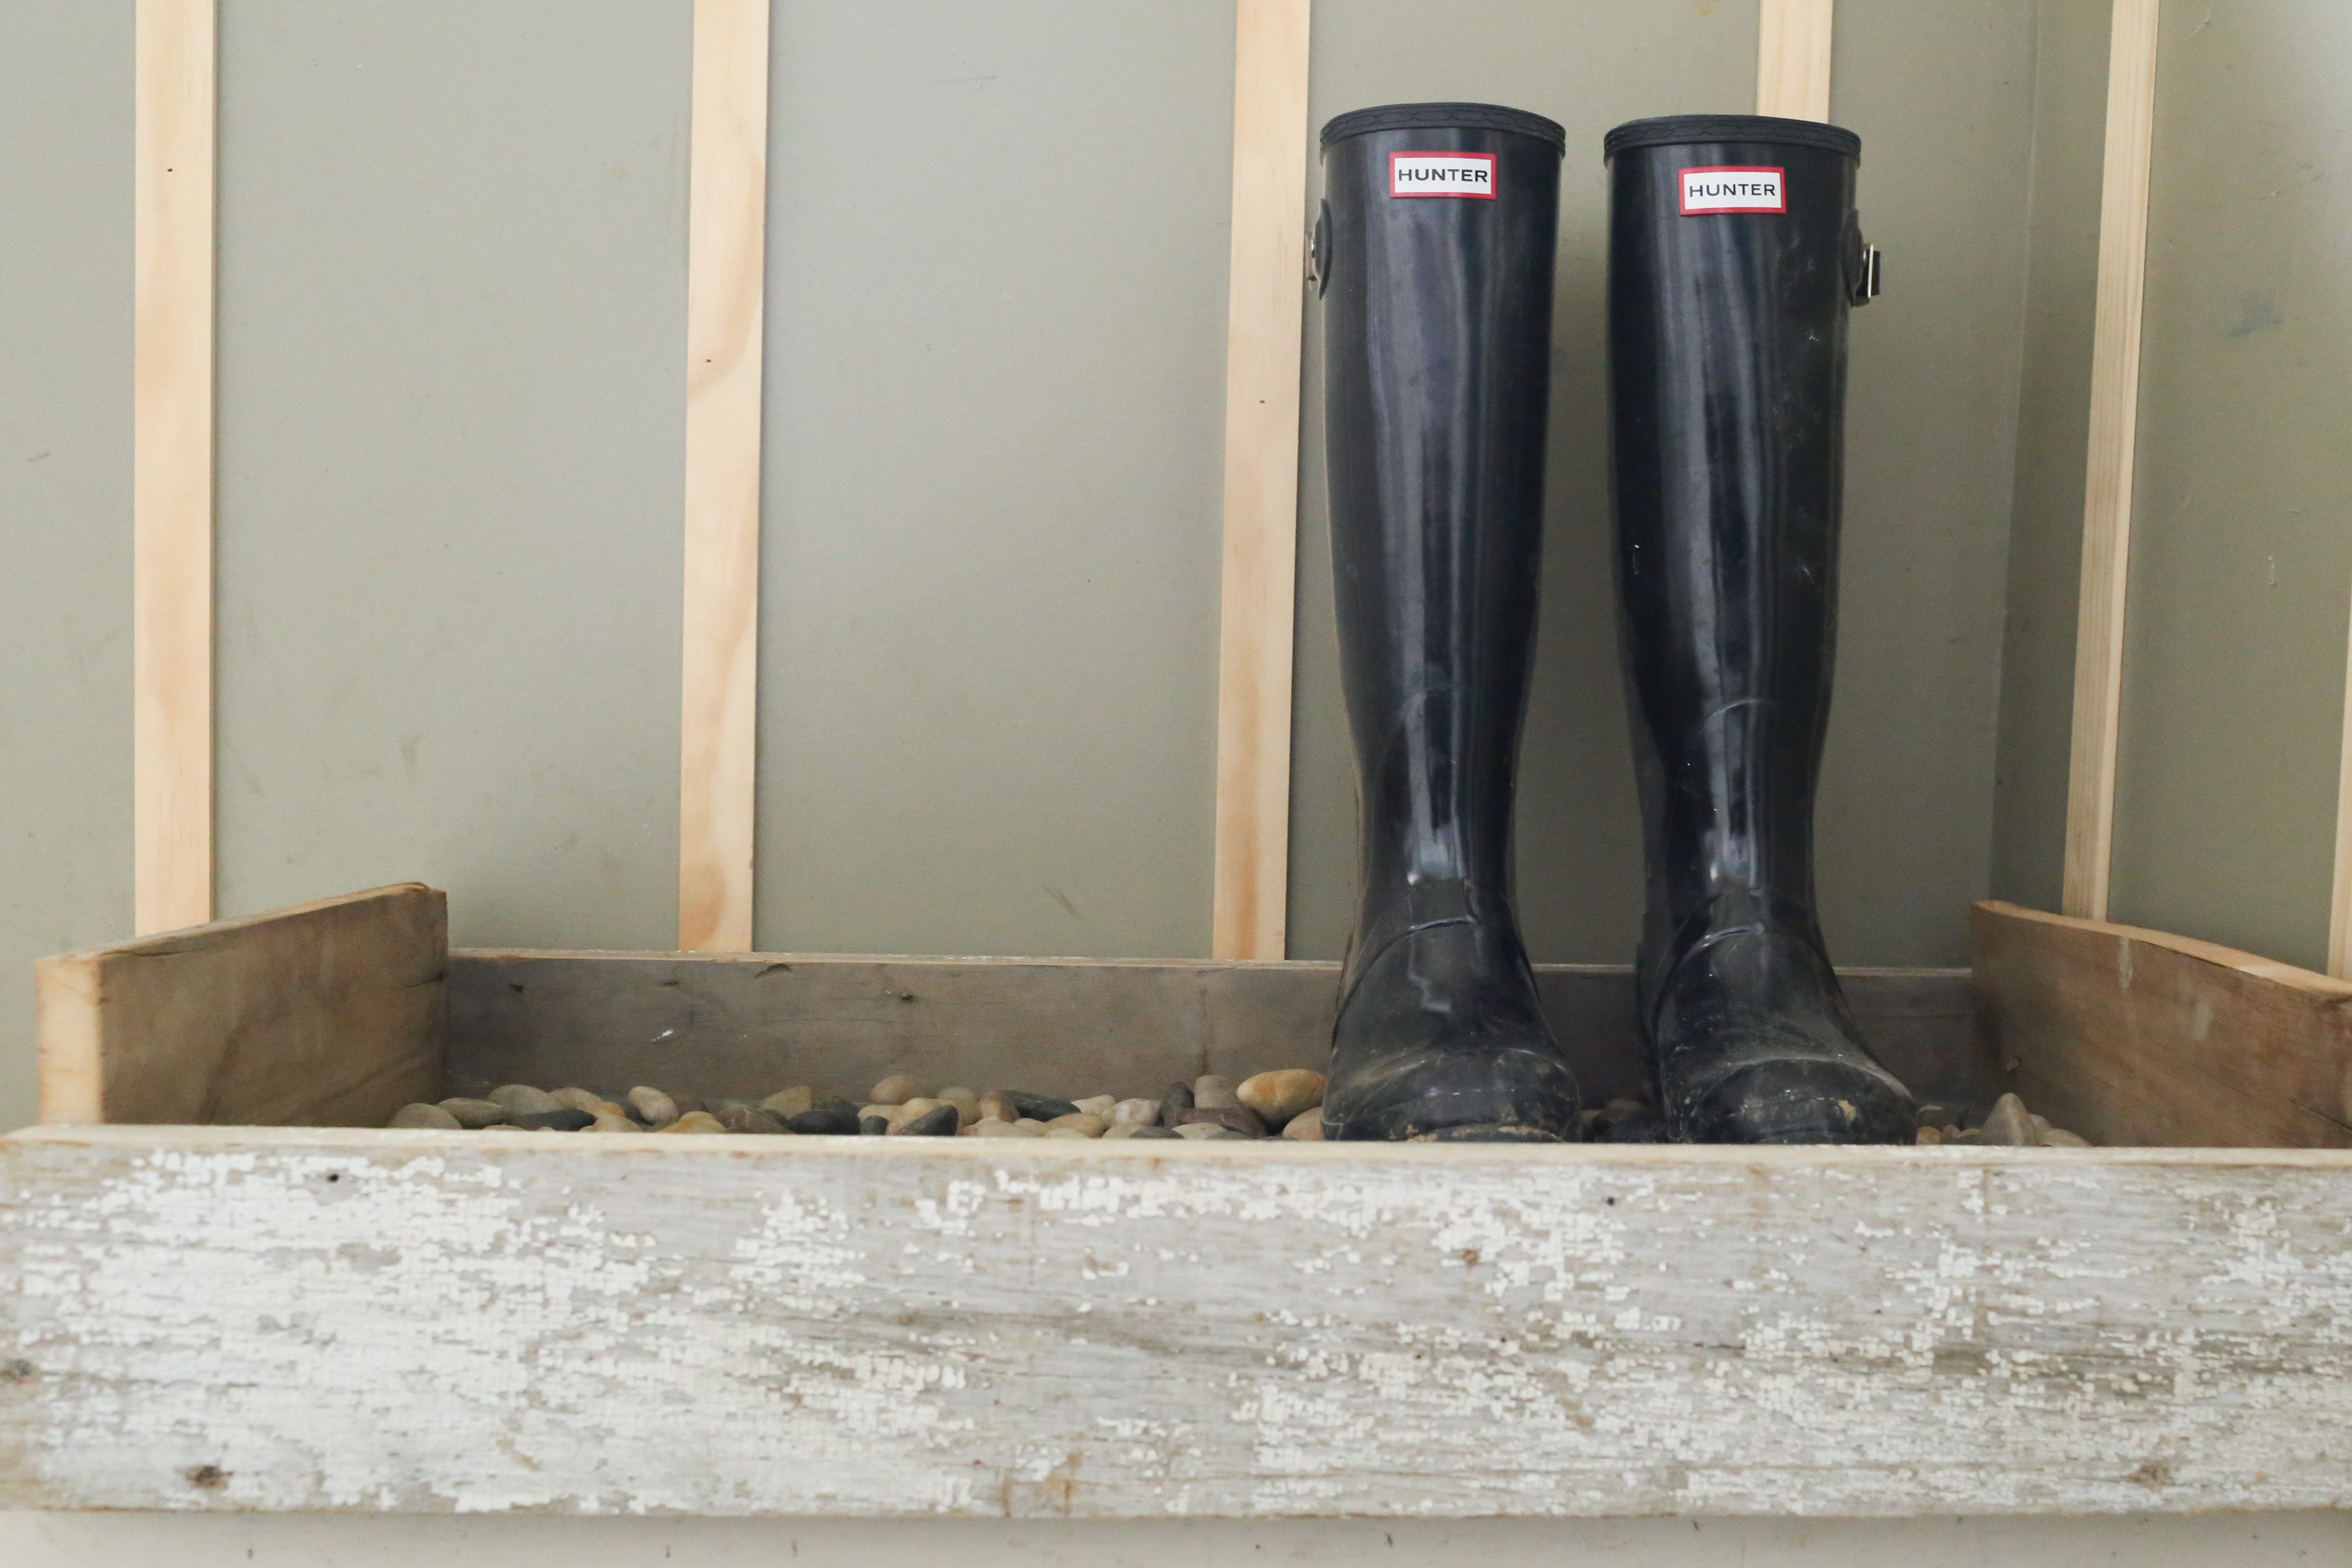 The farmhouse boot tray helps drain the boots and keeps them in place in style.